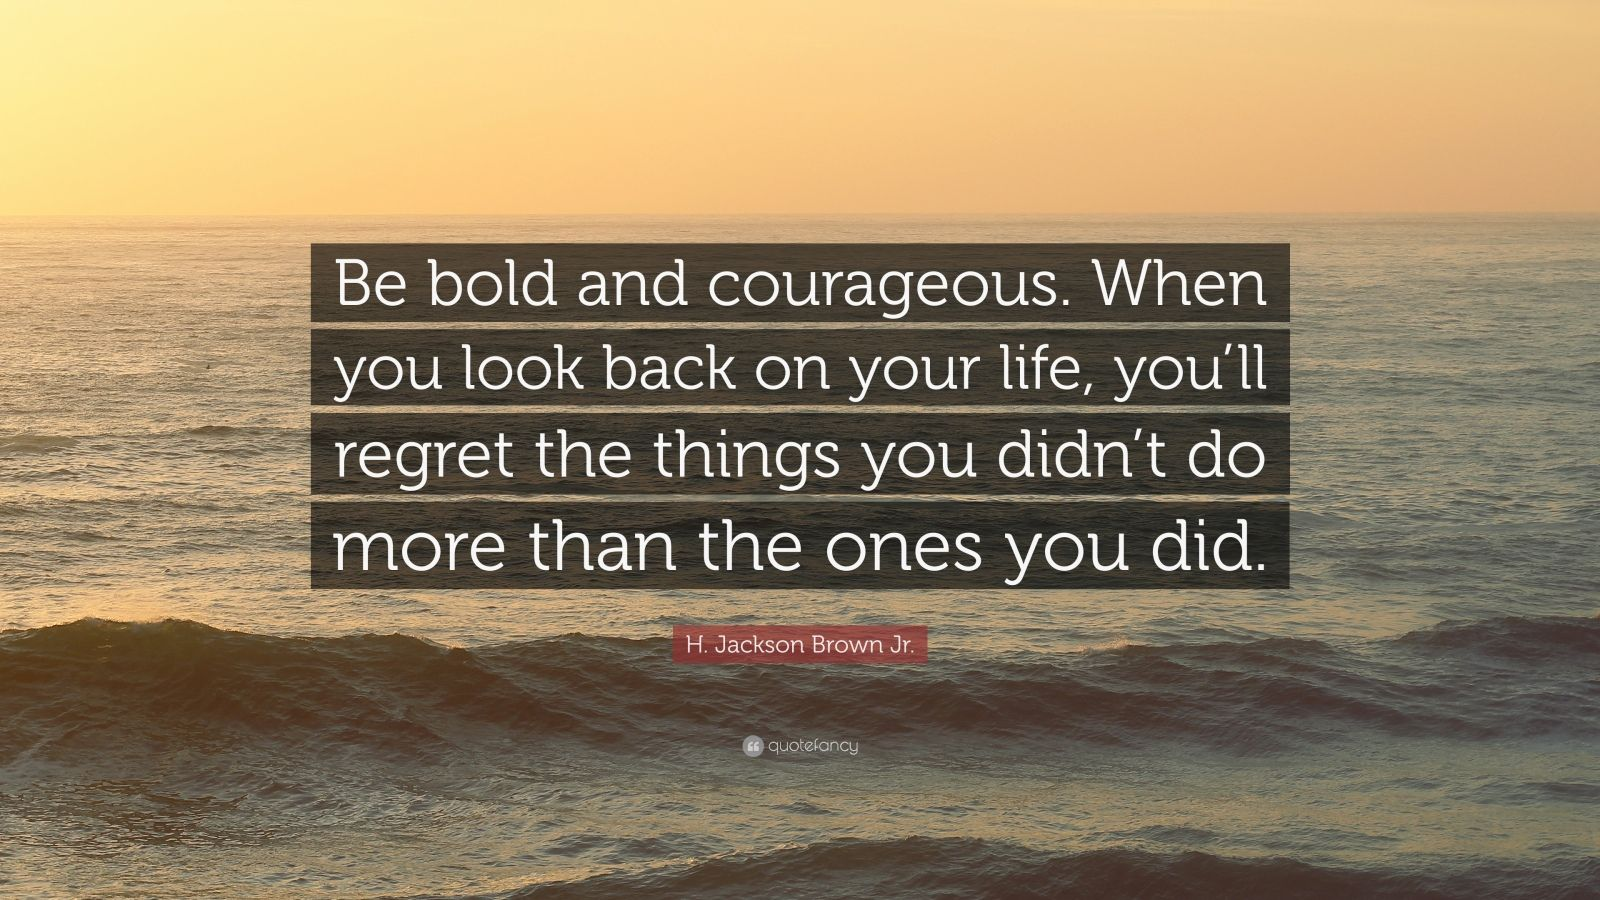 """H. Jackson Brown Jr. Quote: """"Be bold and courageous. When you look back on your life, you'll regret the things you didn't do more than the ones you did."""""""